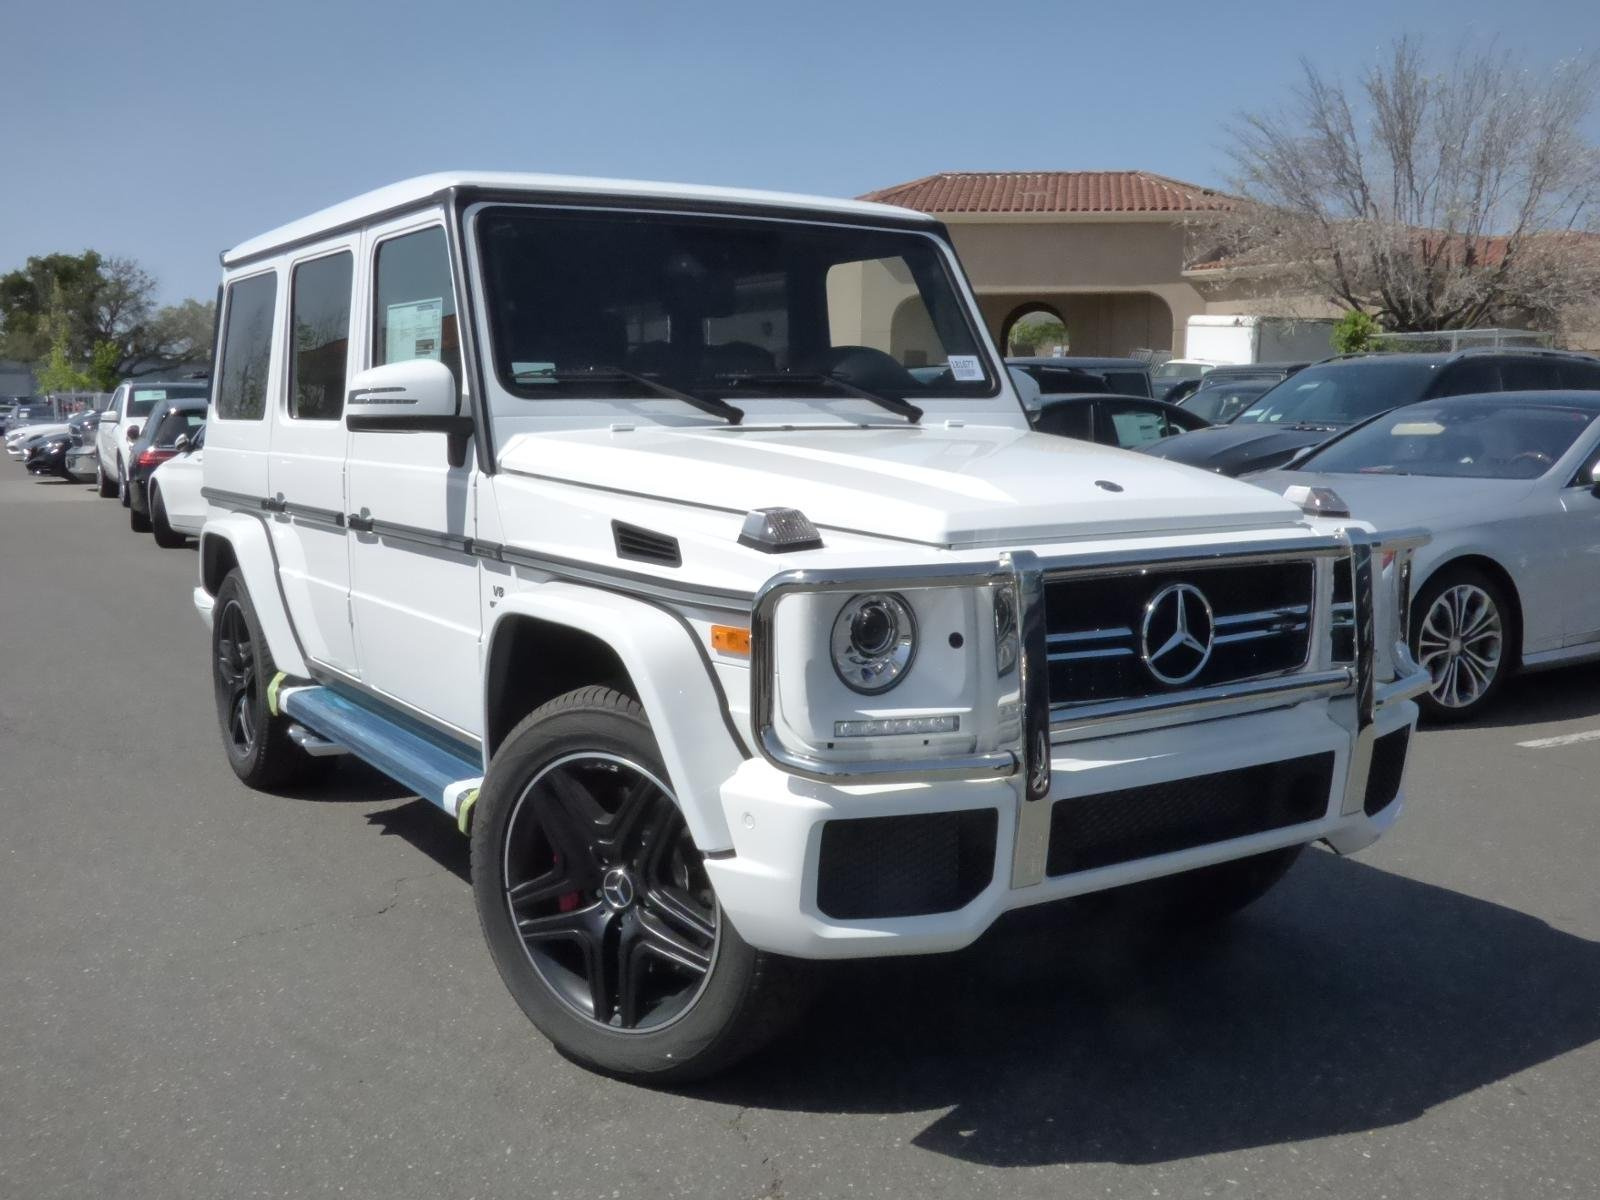 New 2018 Mercedes Benz G Class AMG G 63 SUV SUV in Thousand Oaks